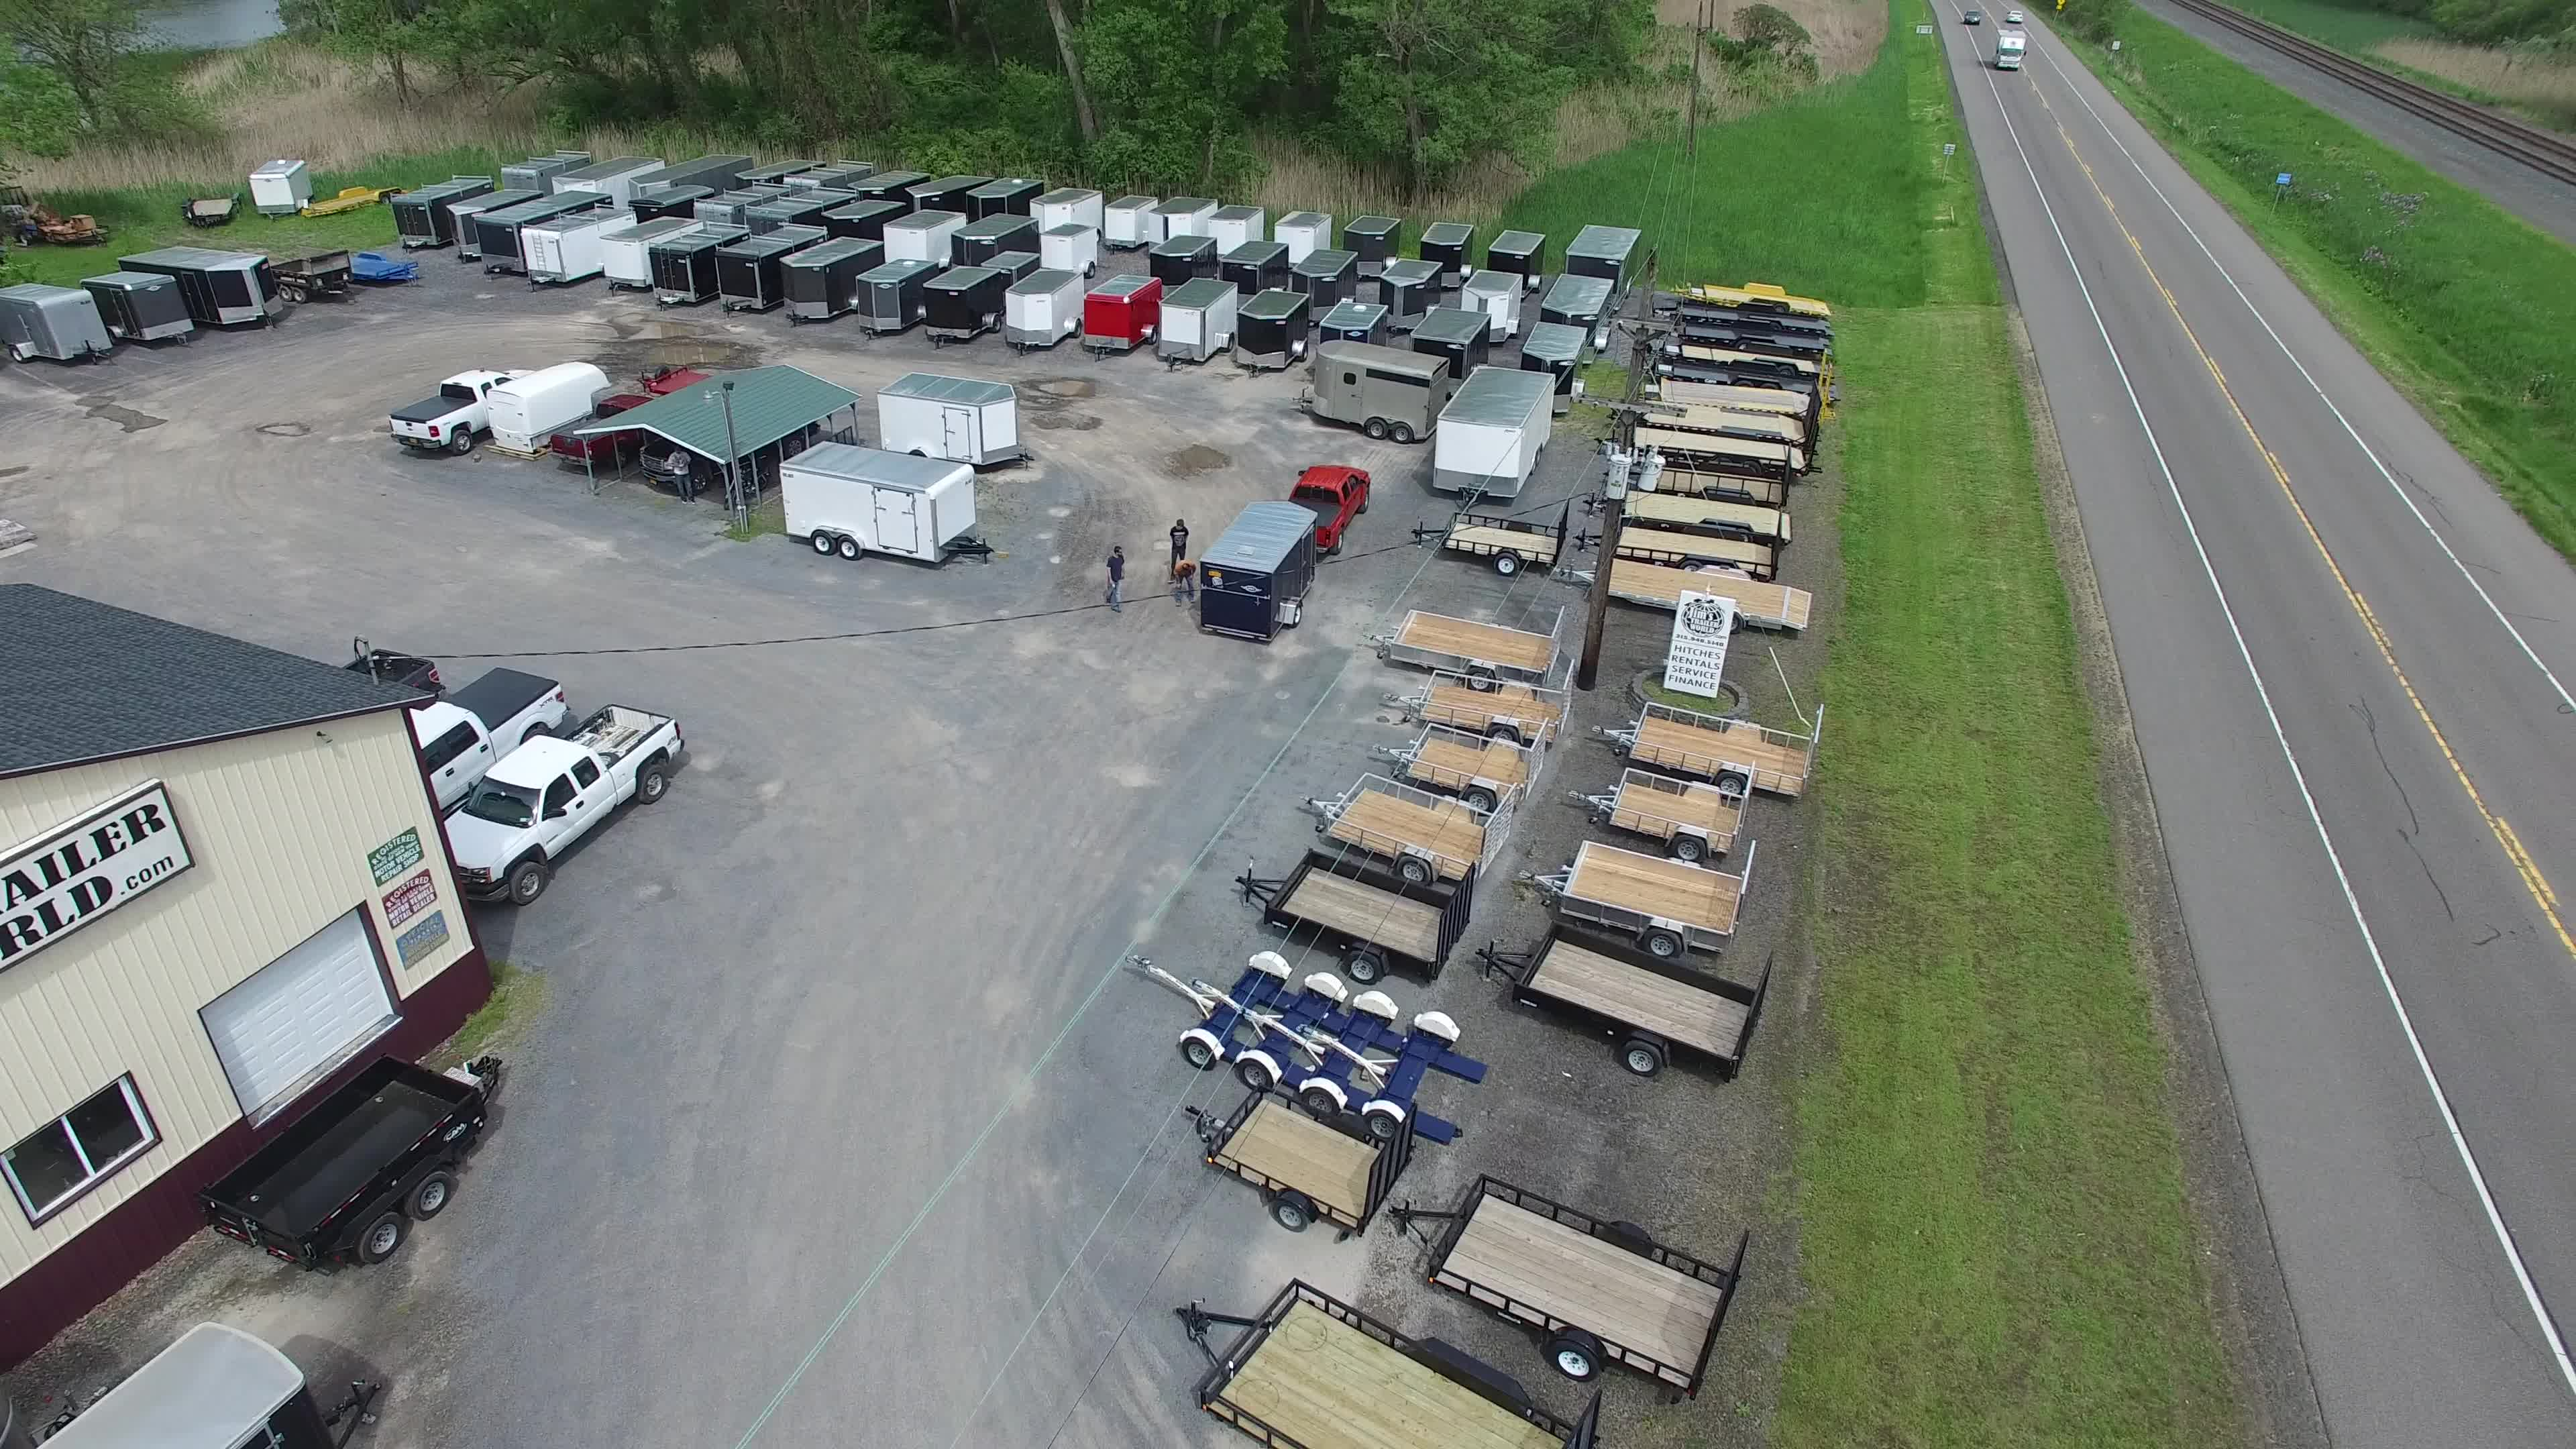 Jims Trailer World Overhead View